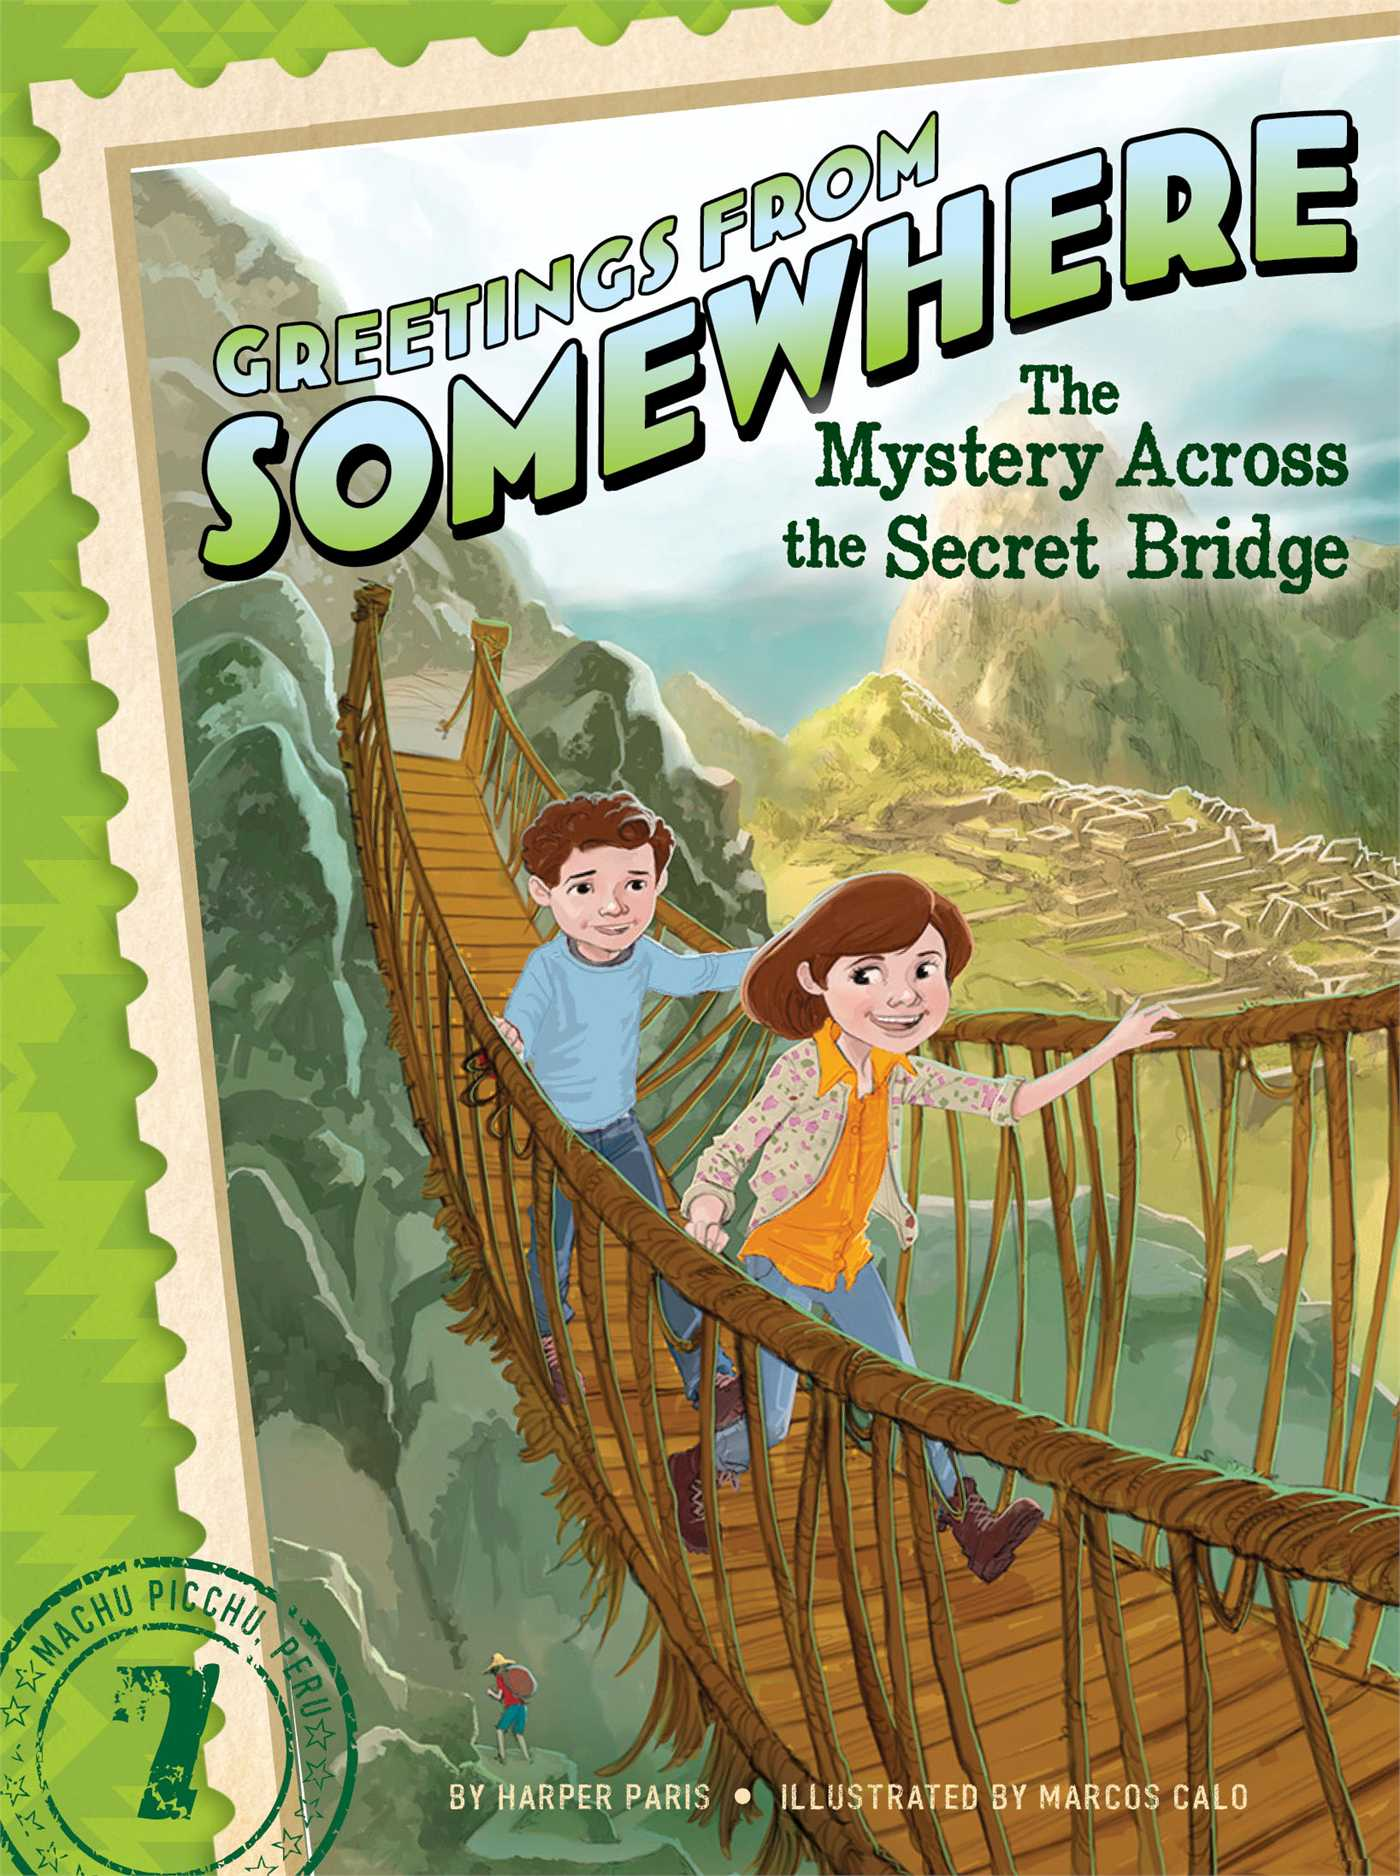 Mystery-across-the-secret-bridge-9781481423670_hr